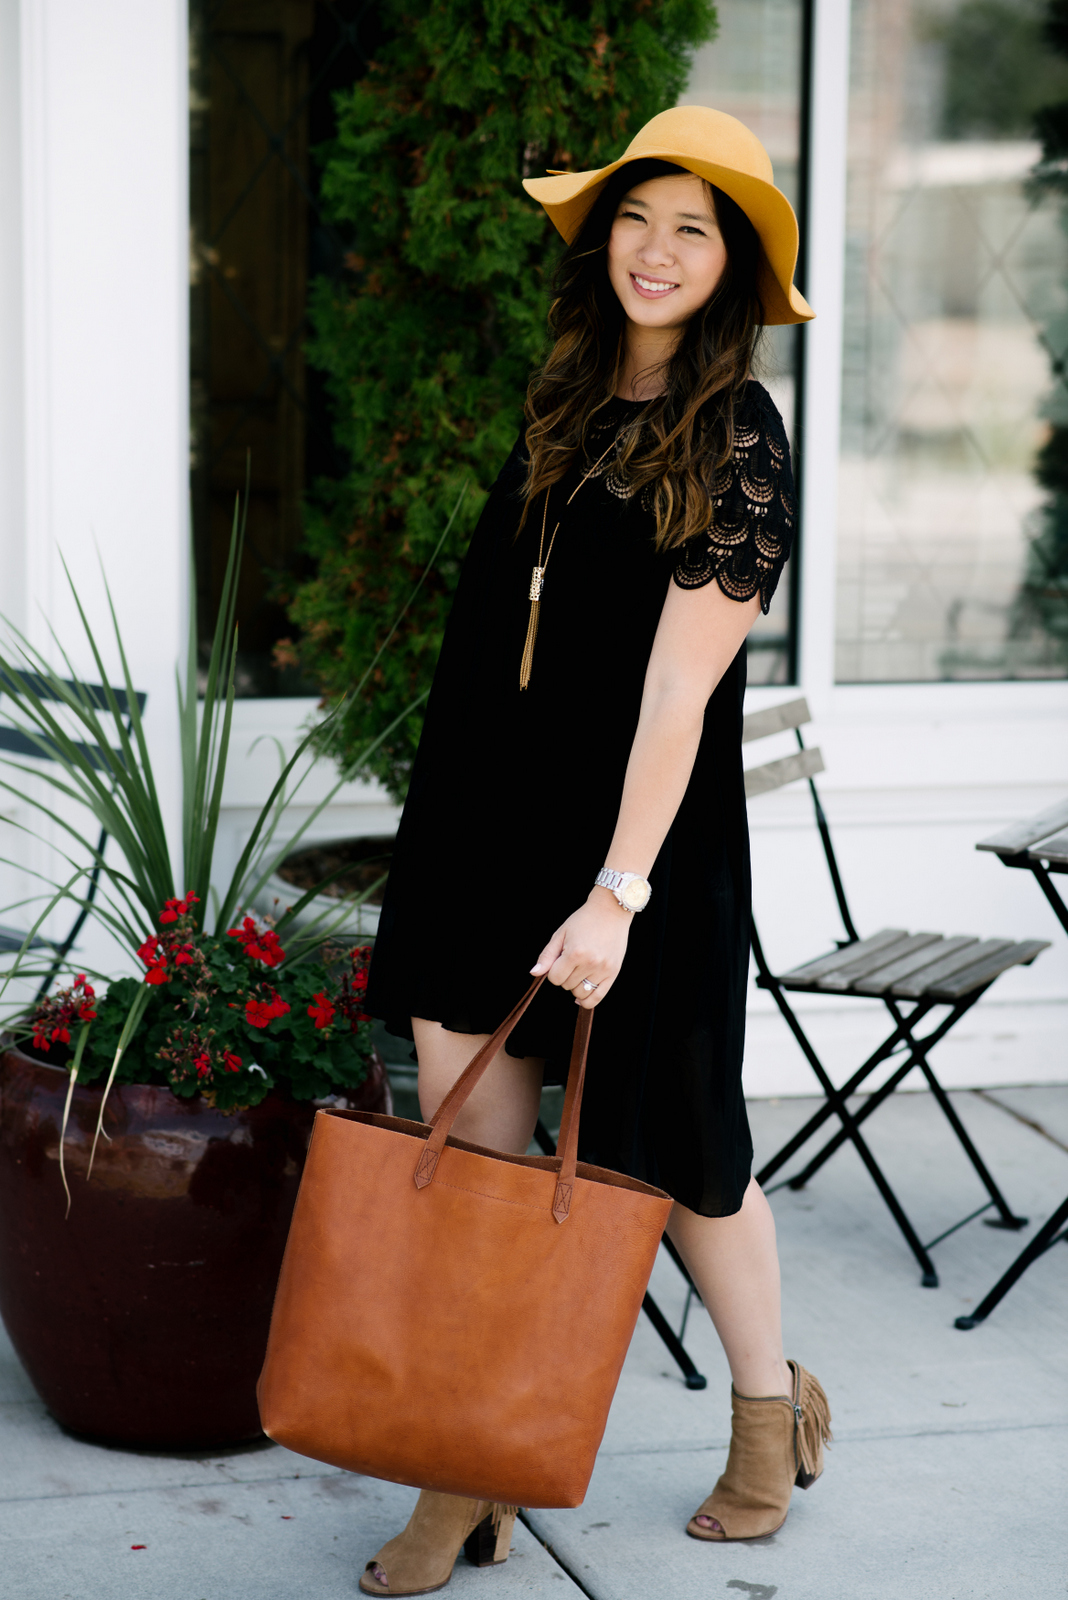 Black dress and floppy hat style